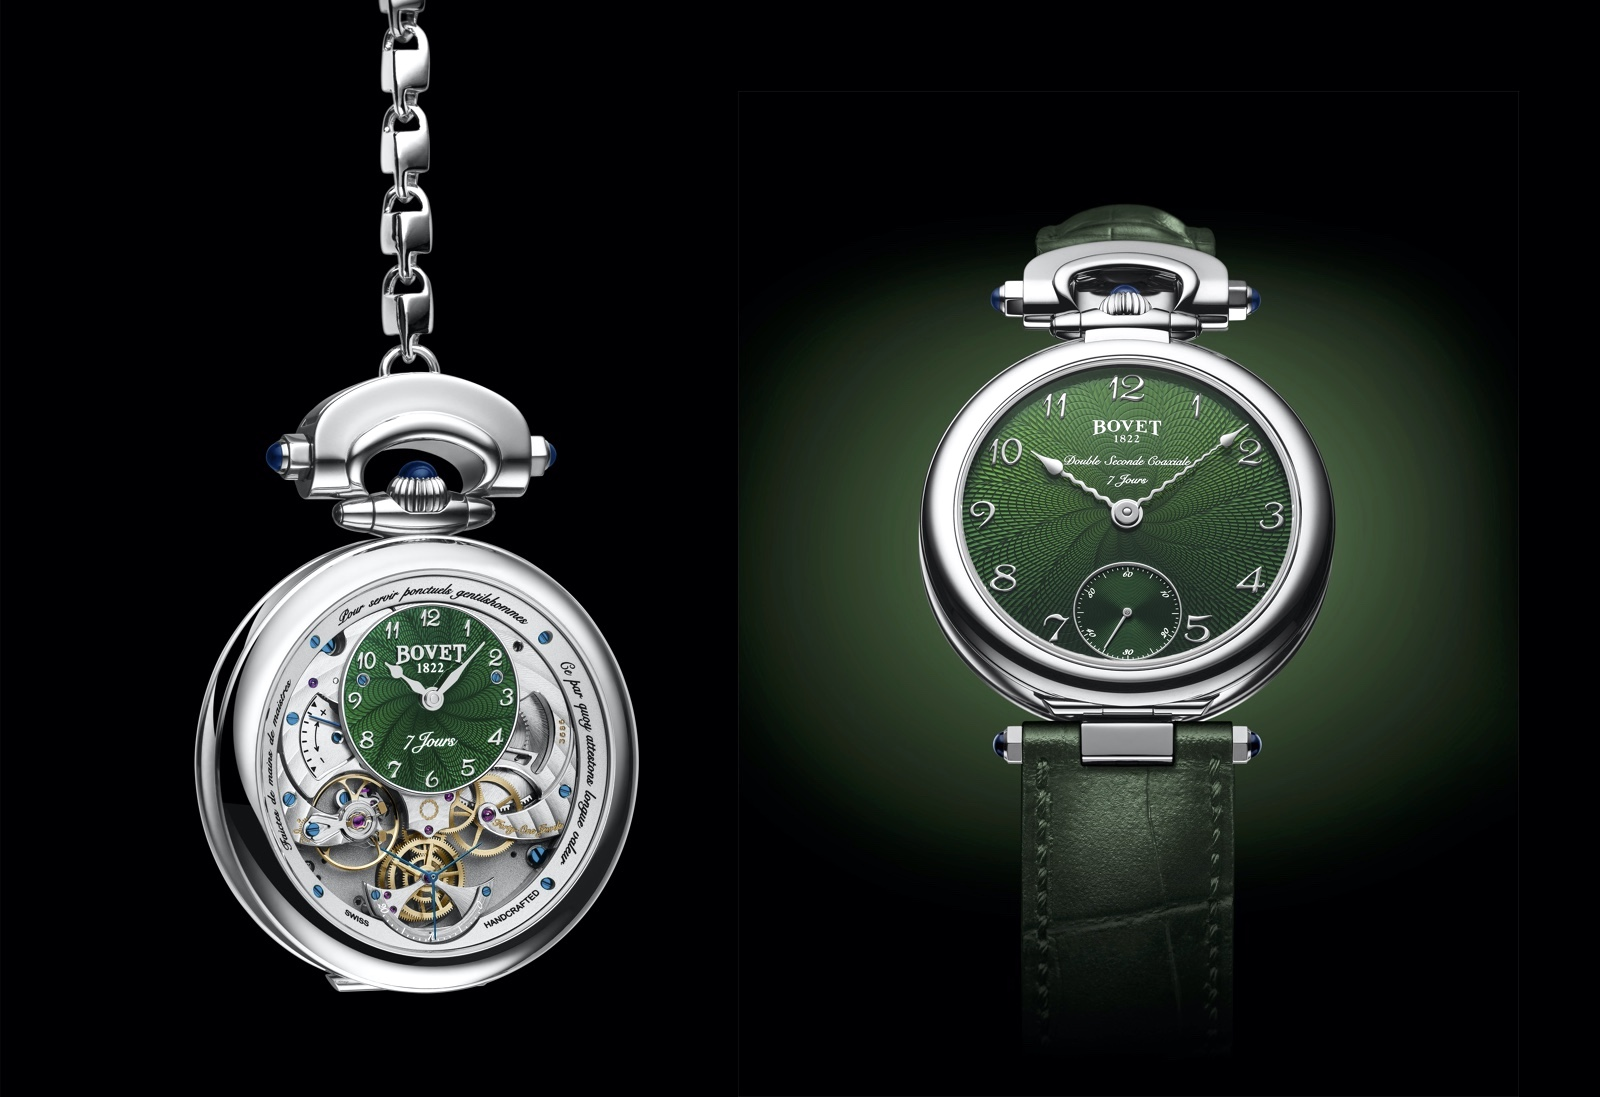 Bovet 1822 Amadeo Fleurier 43 Monsieur Bovet Views